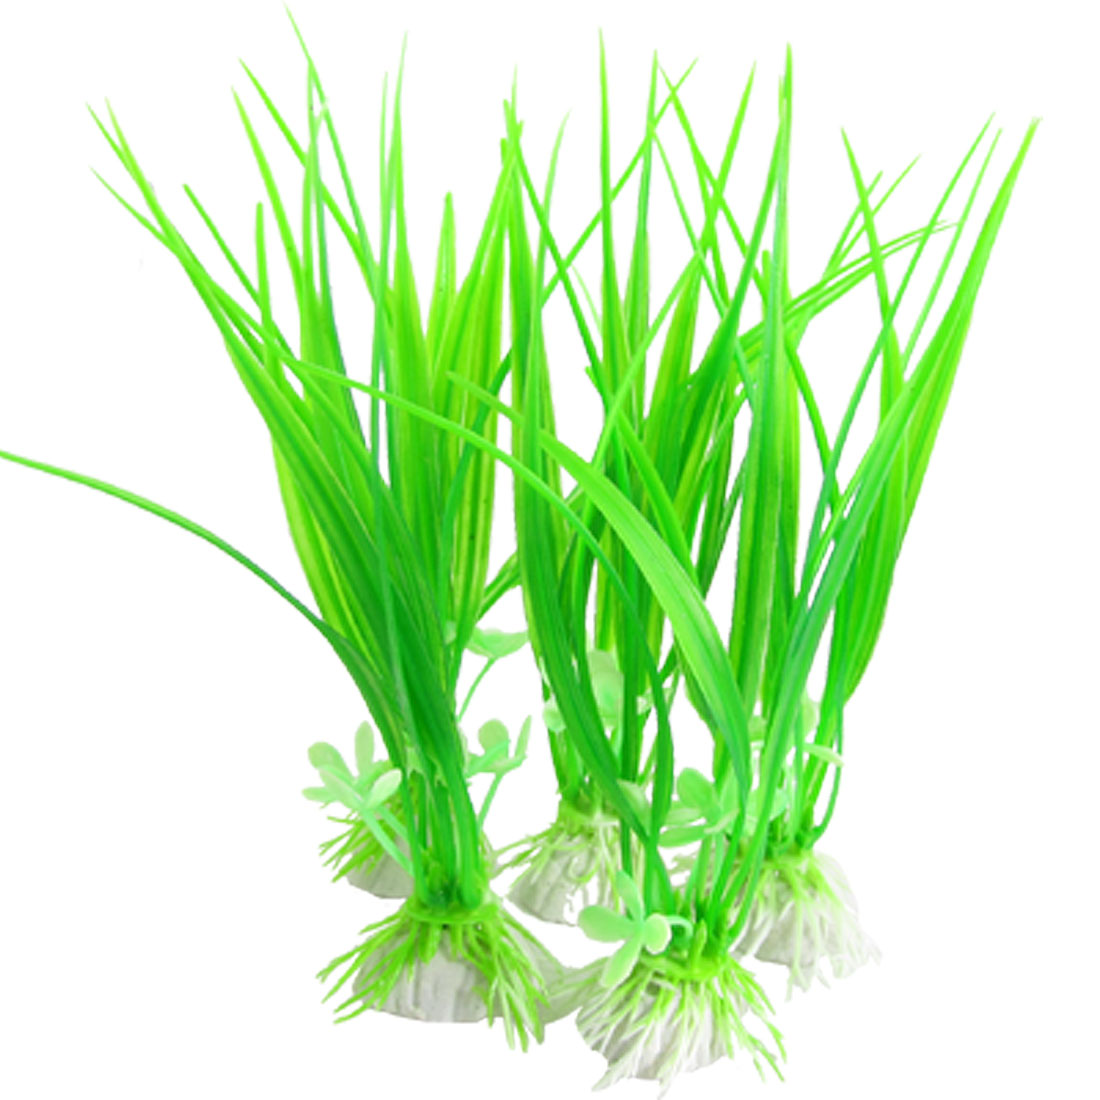 5 Pcs Green Plastic Plants Grass Decorative for Fish Tank